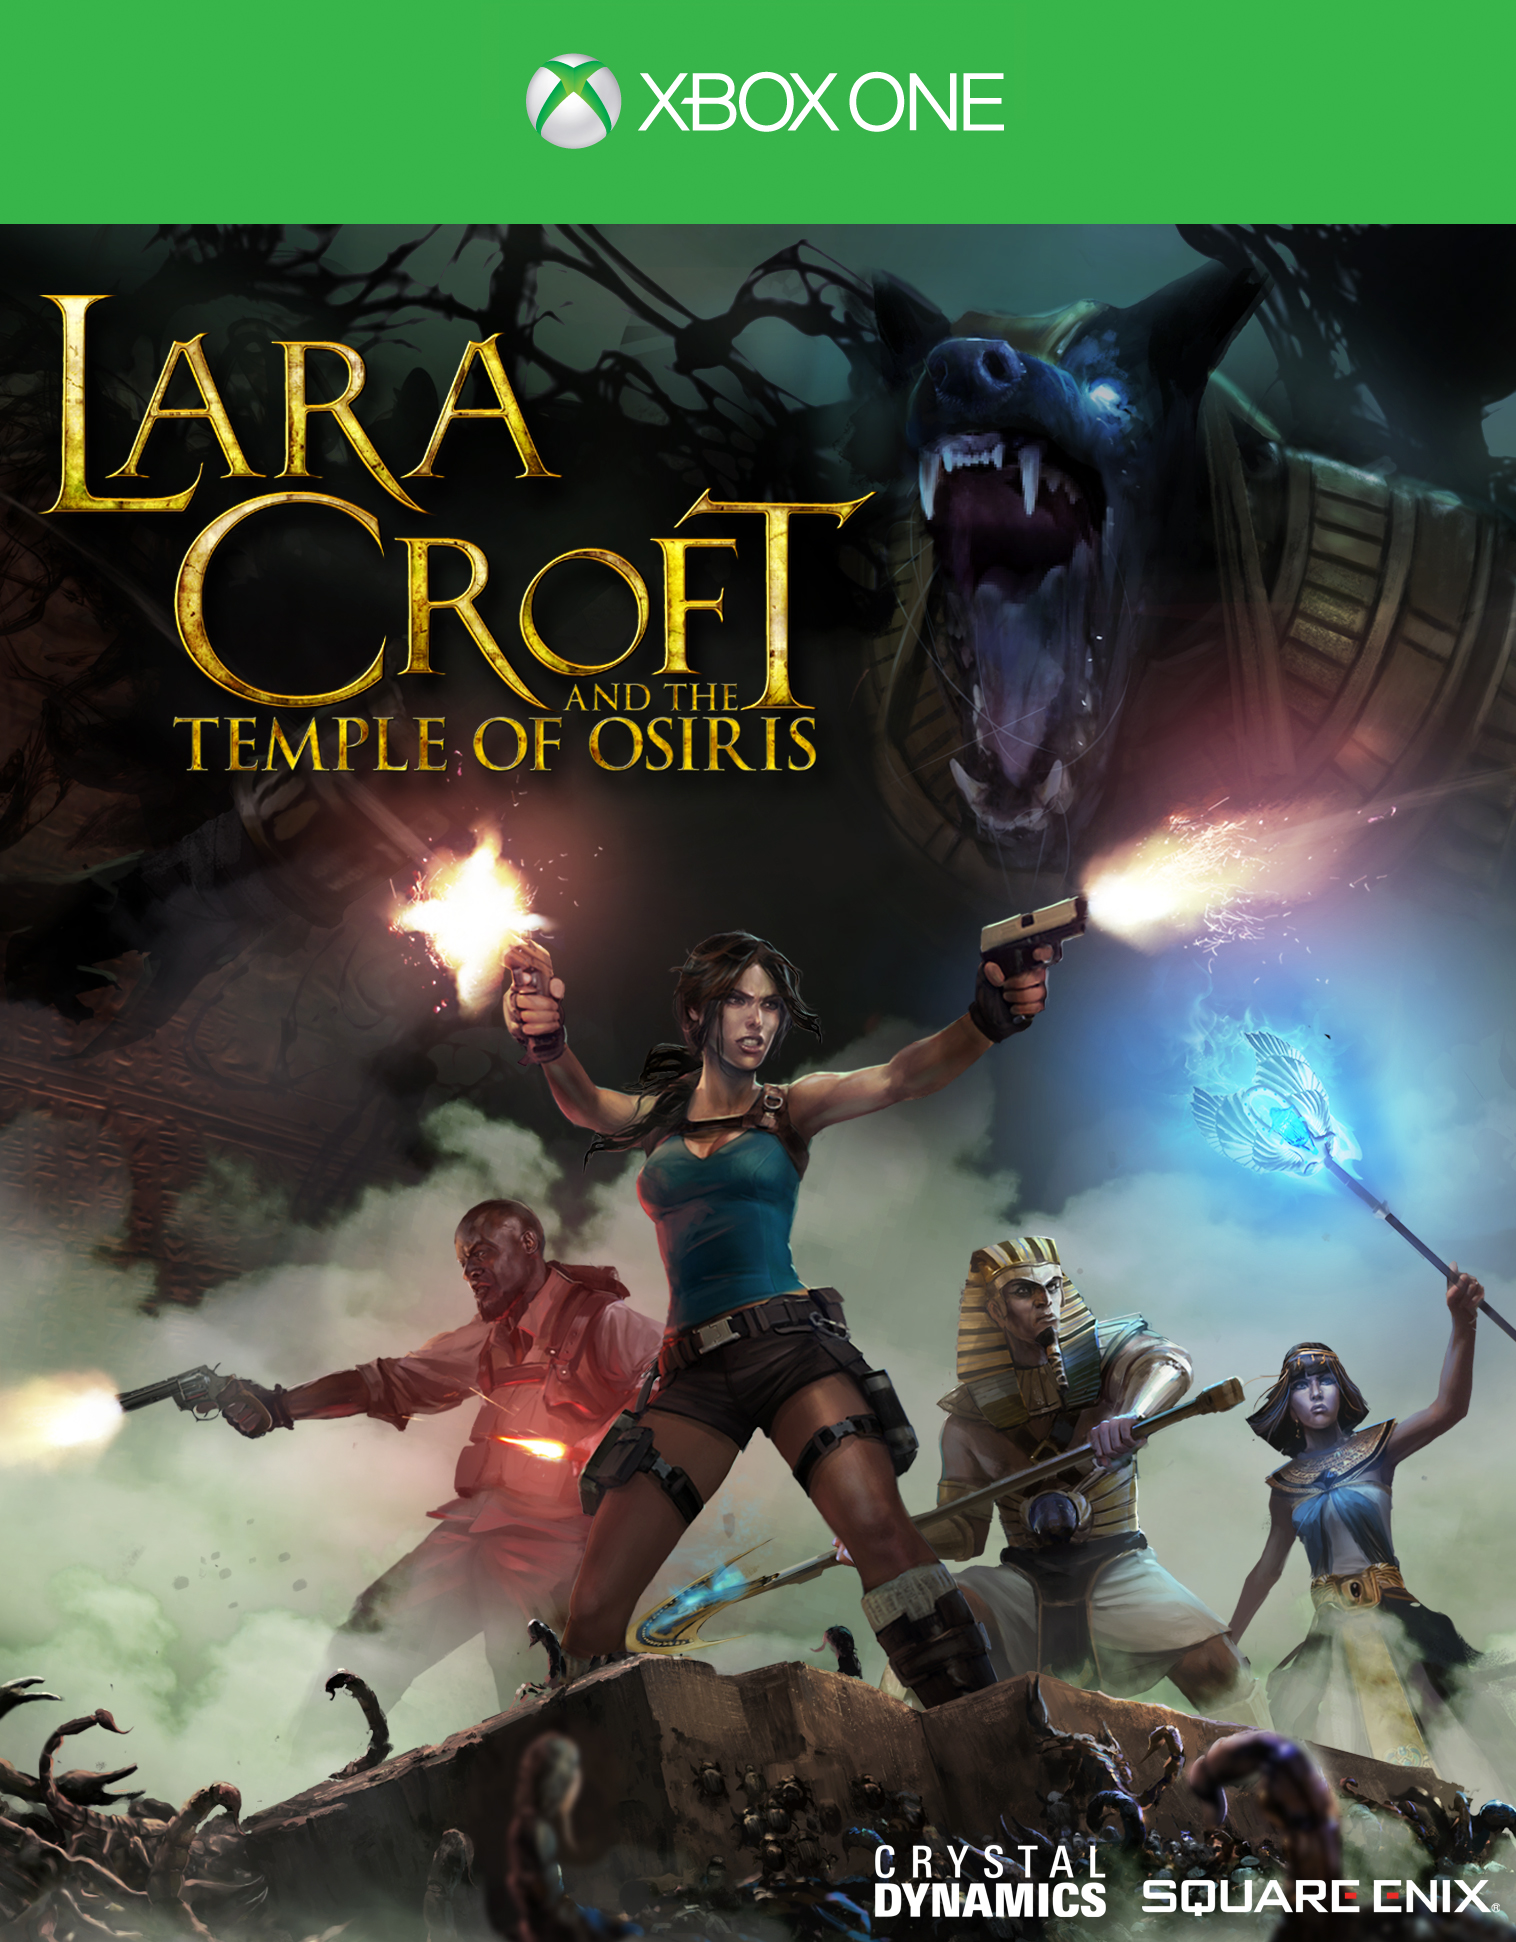 Lara_Croft_Temple_of_Osiris_Packshot_XB1_1402335522